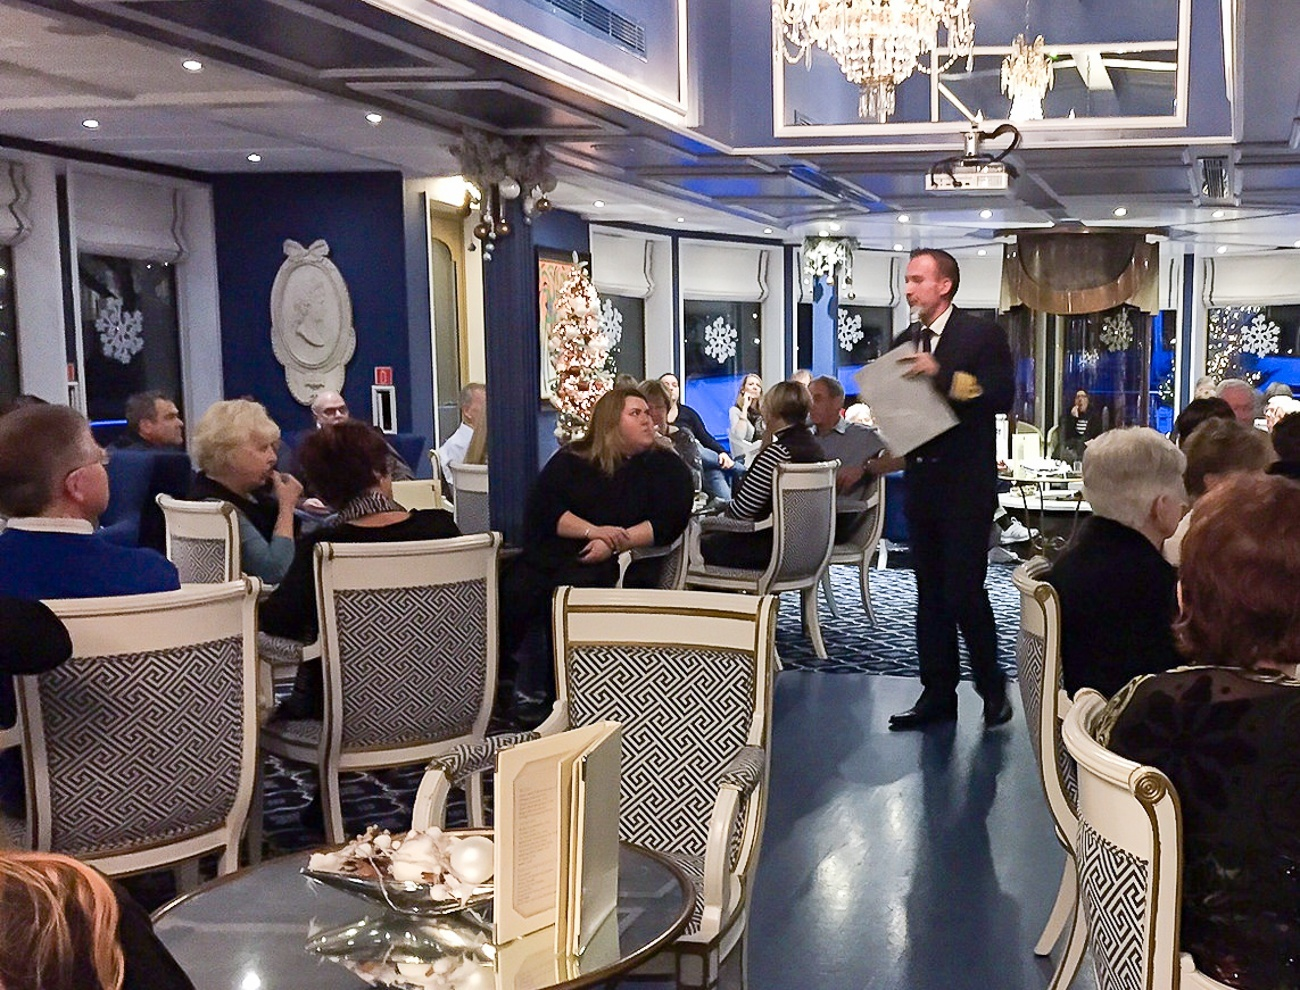 Our Uniworld captain giving a speech before dinner on the River Queen.